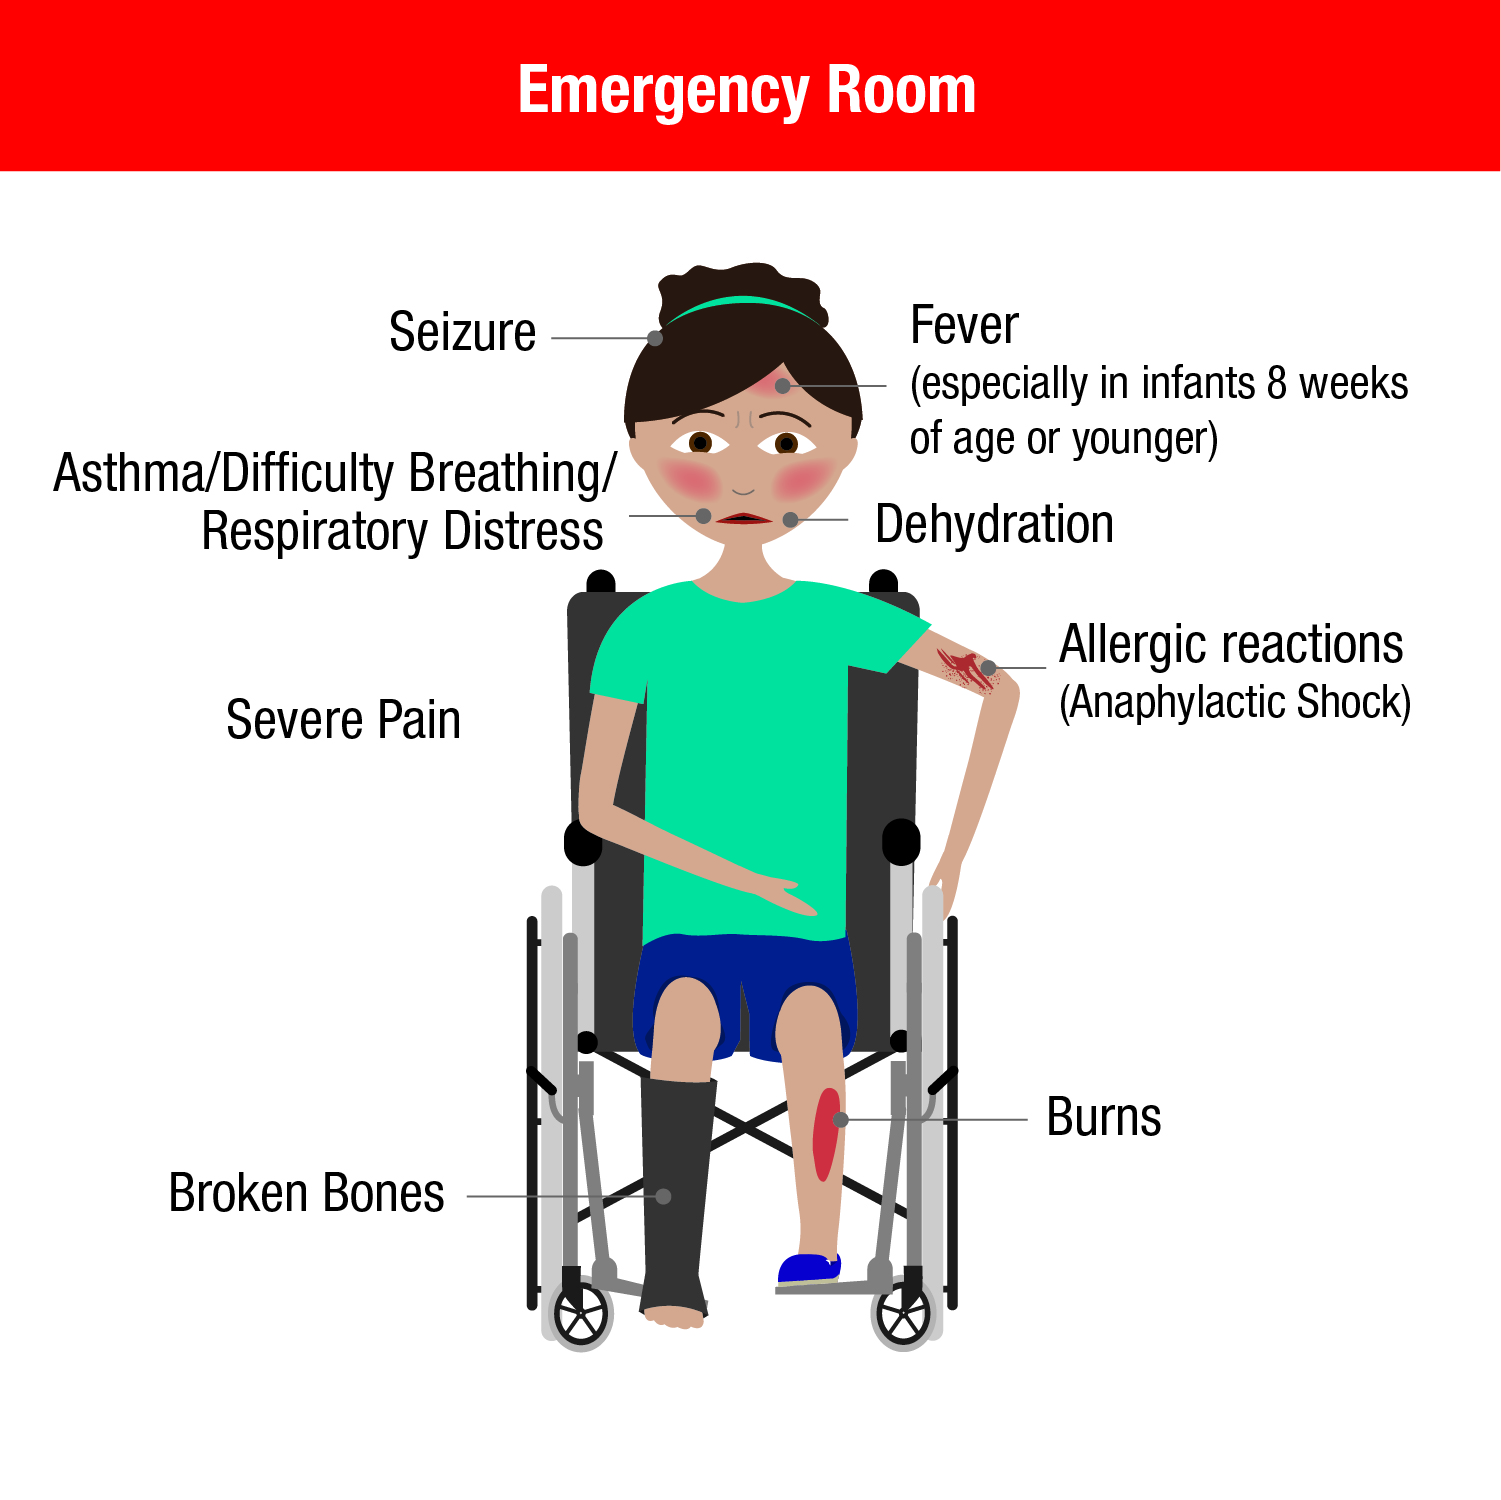 Emergency Room infographic